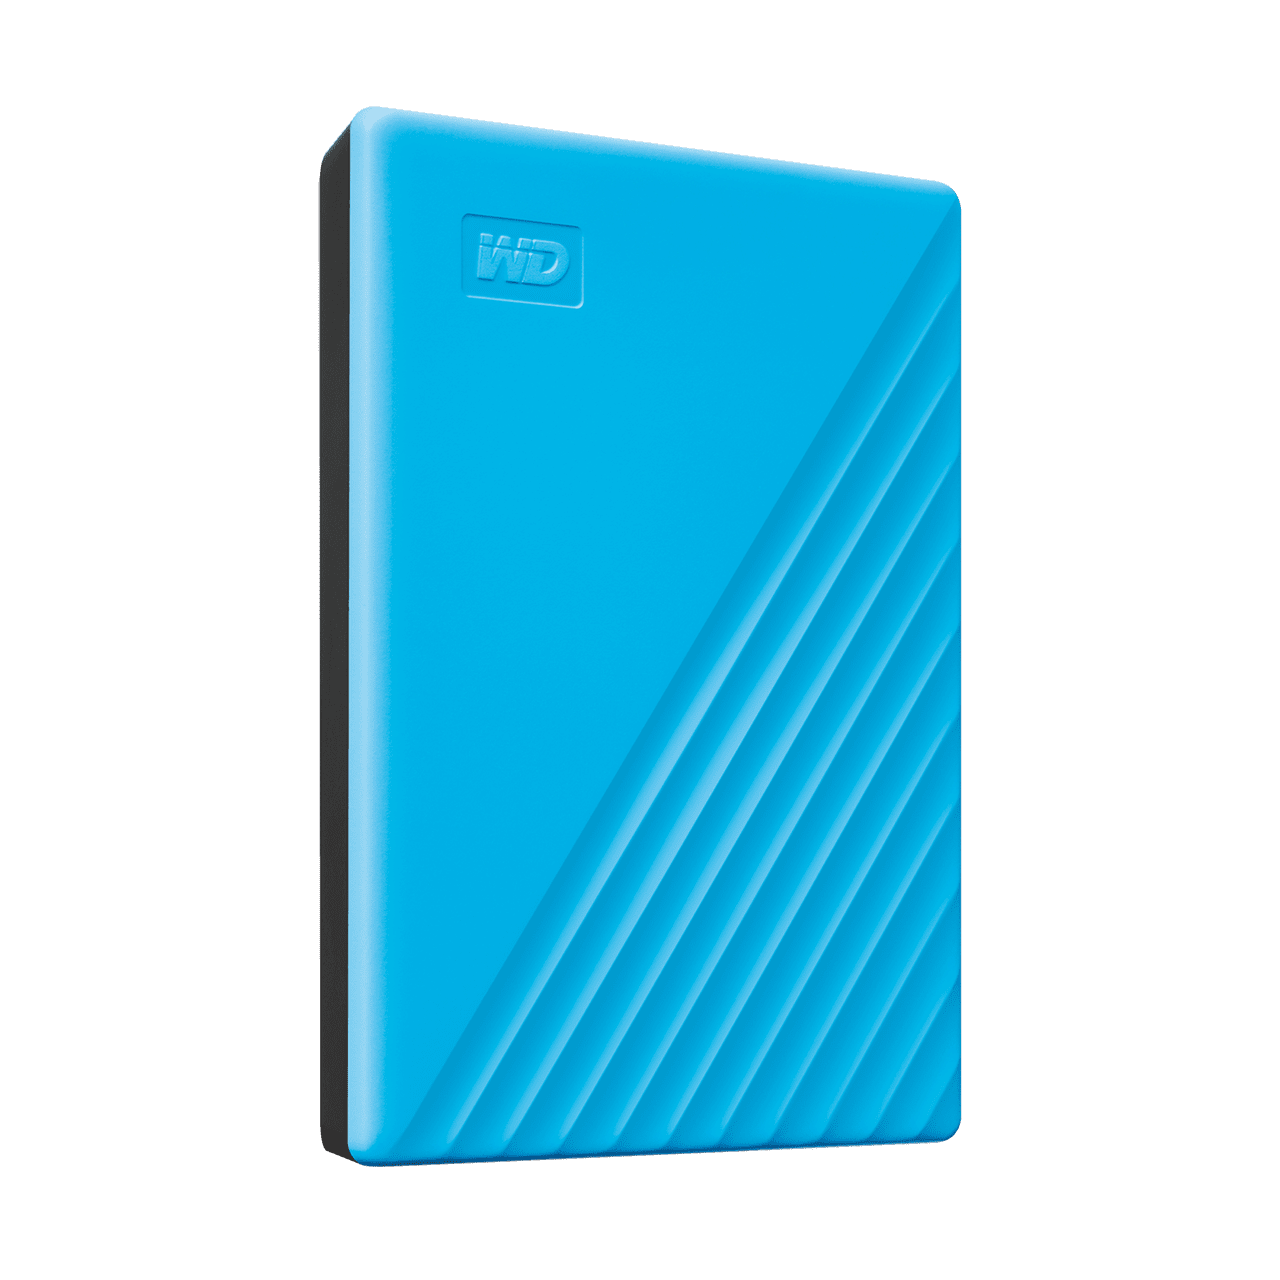 WD Western Digital My Passport 1TB / 2TB / 4TB / 5TB Slim Portable External Hard Disk USB 3.0 With WD Backup Software & Password Protection